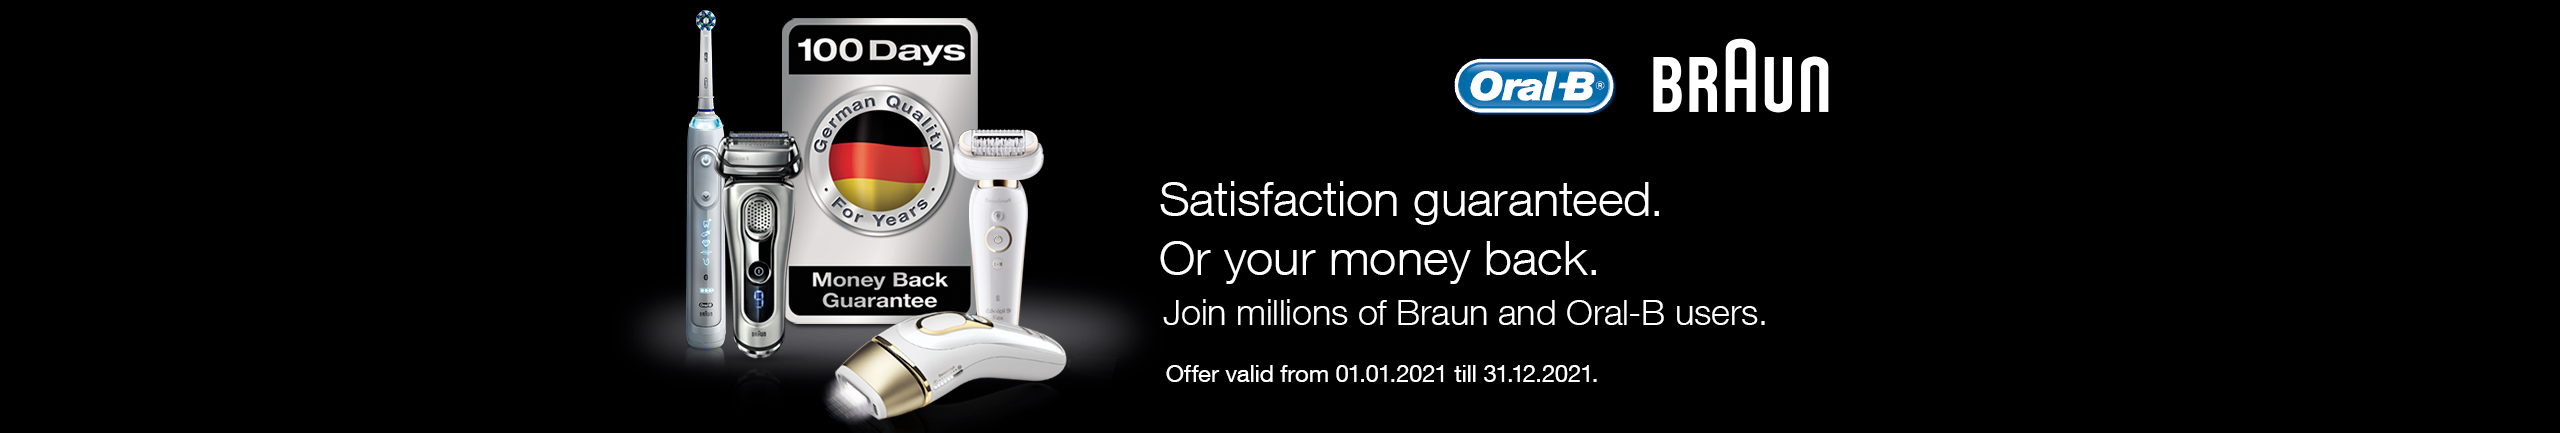 Try Braun products for 100 days!